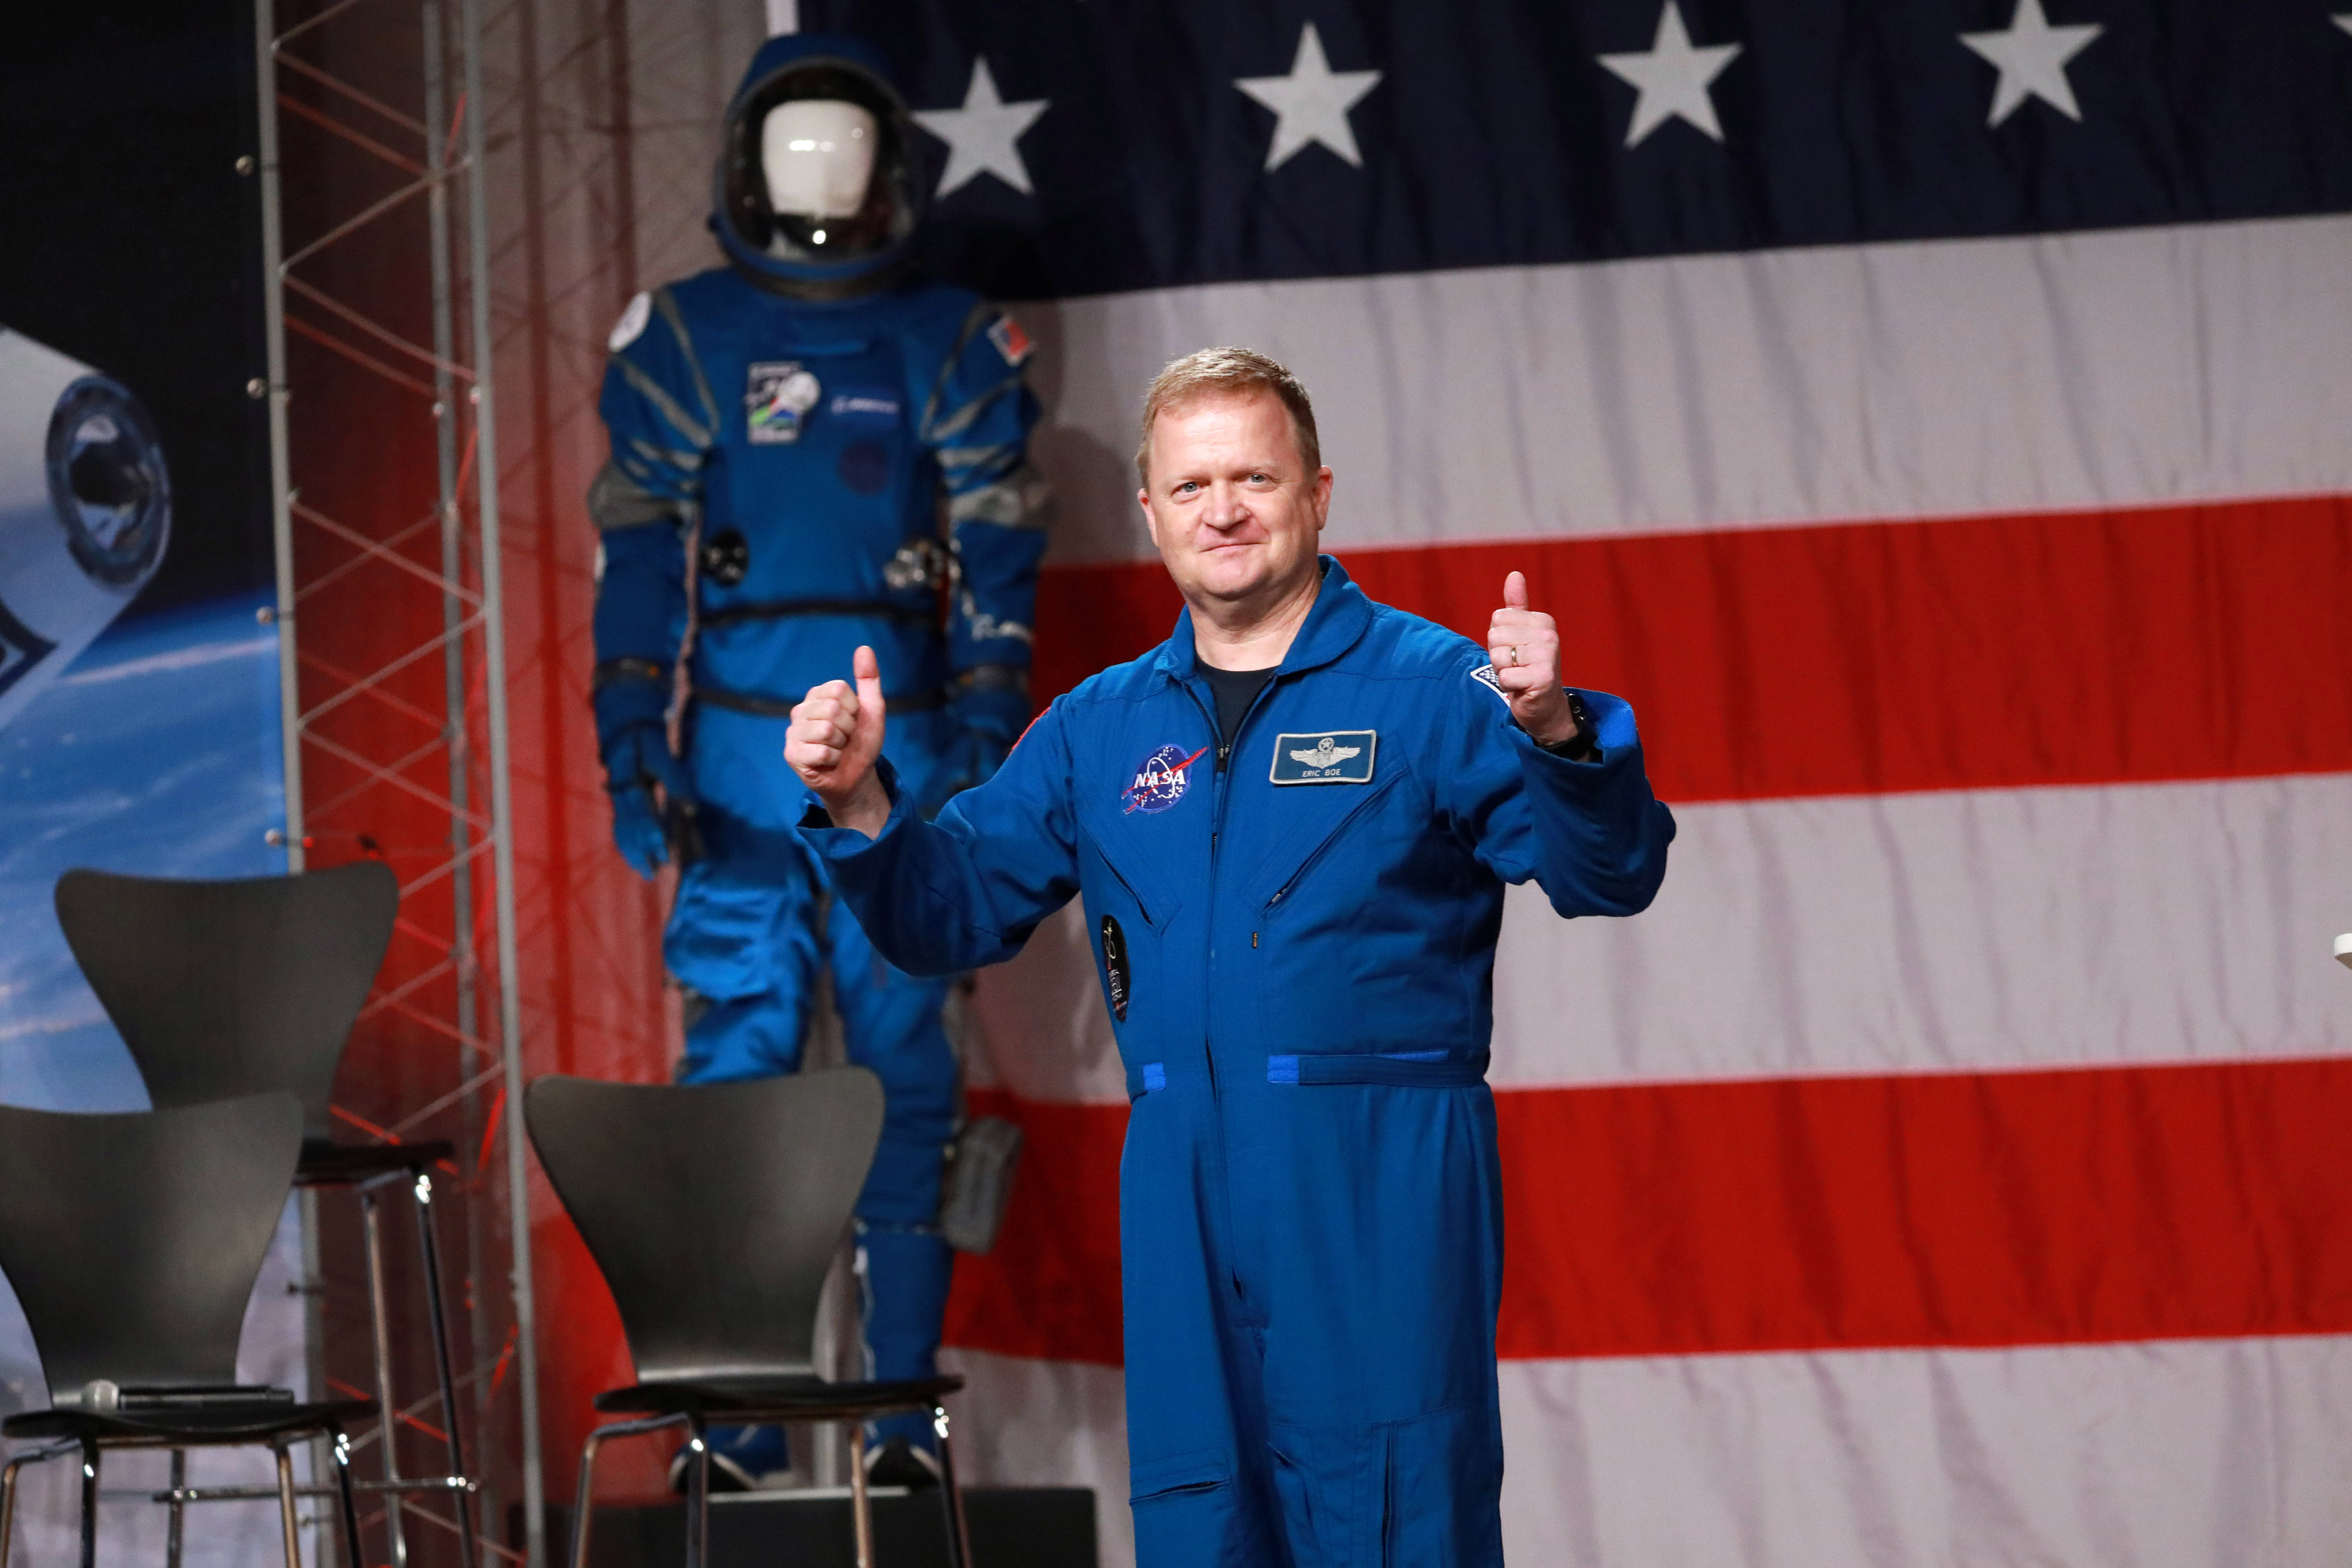 Astronaut Boy is introduced as NASA announces Boeing CST-100 Starliner and SpaceX Crew Dragon in Houston